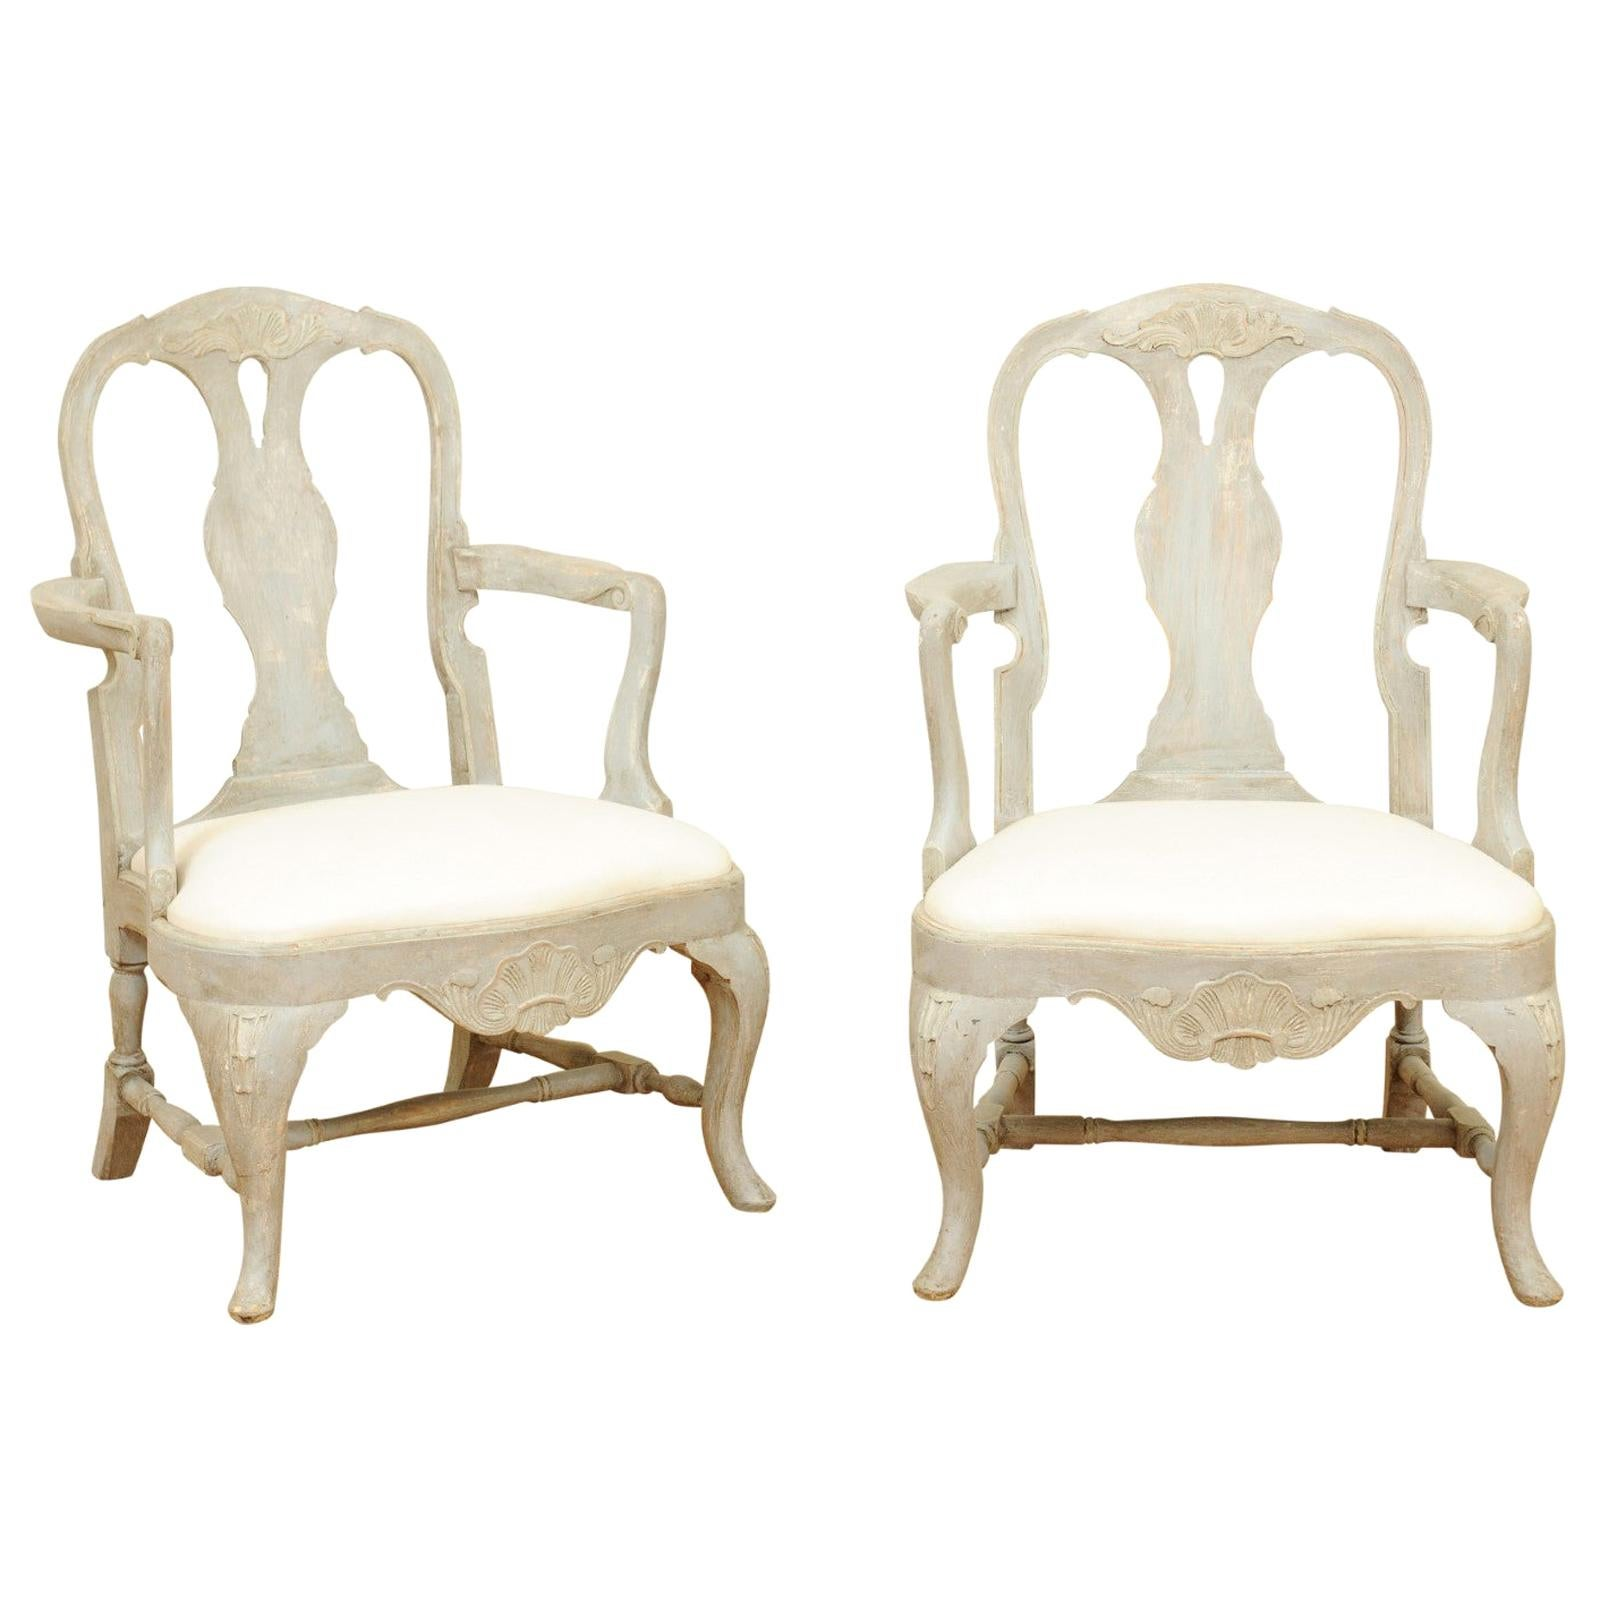 Pair of Swedish Rococo Style 1890s Painted Wood Armchairs with New Upholstery